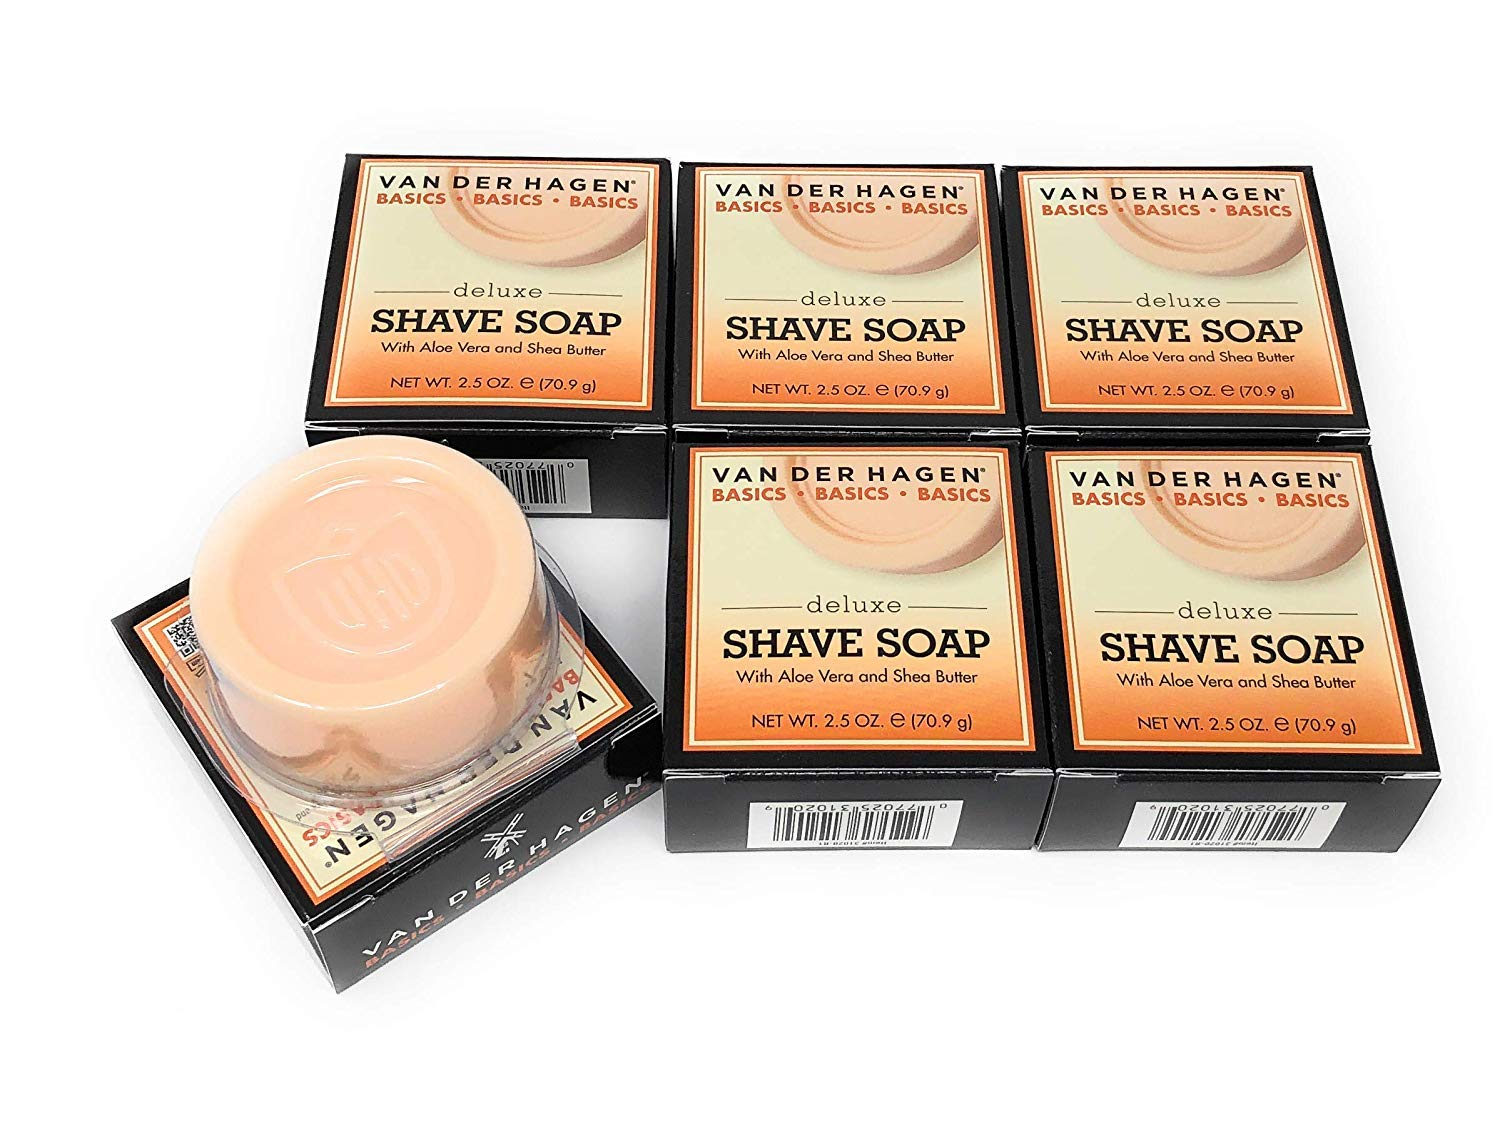 Van Manufacturer OFFicial shop Der Hagen Deluxe Shave Ranking TOP13 Soap 2.5-Ounce Pack Boxes 6 Pa of